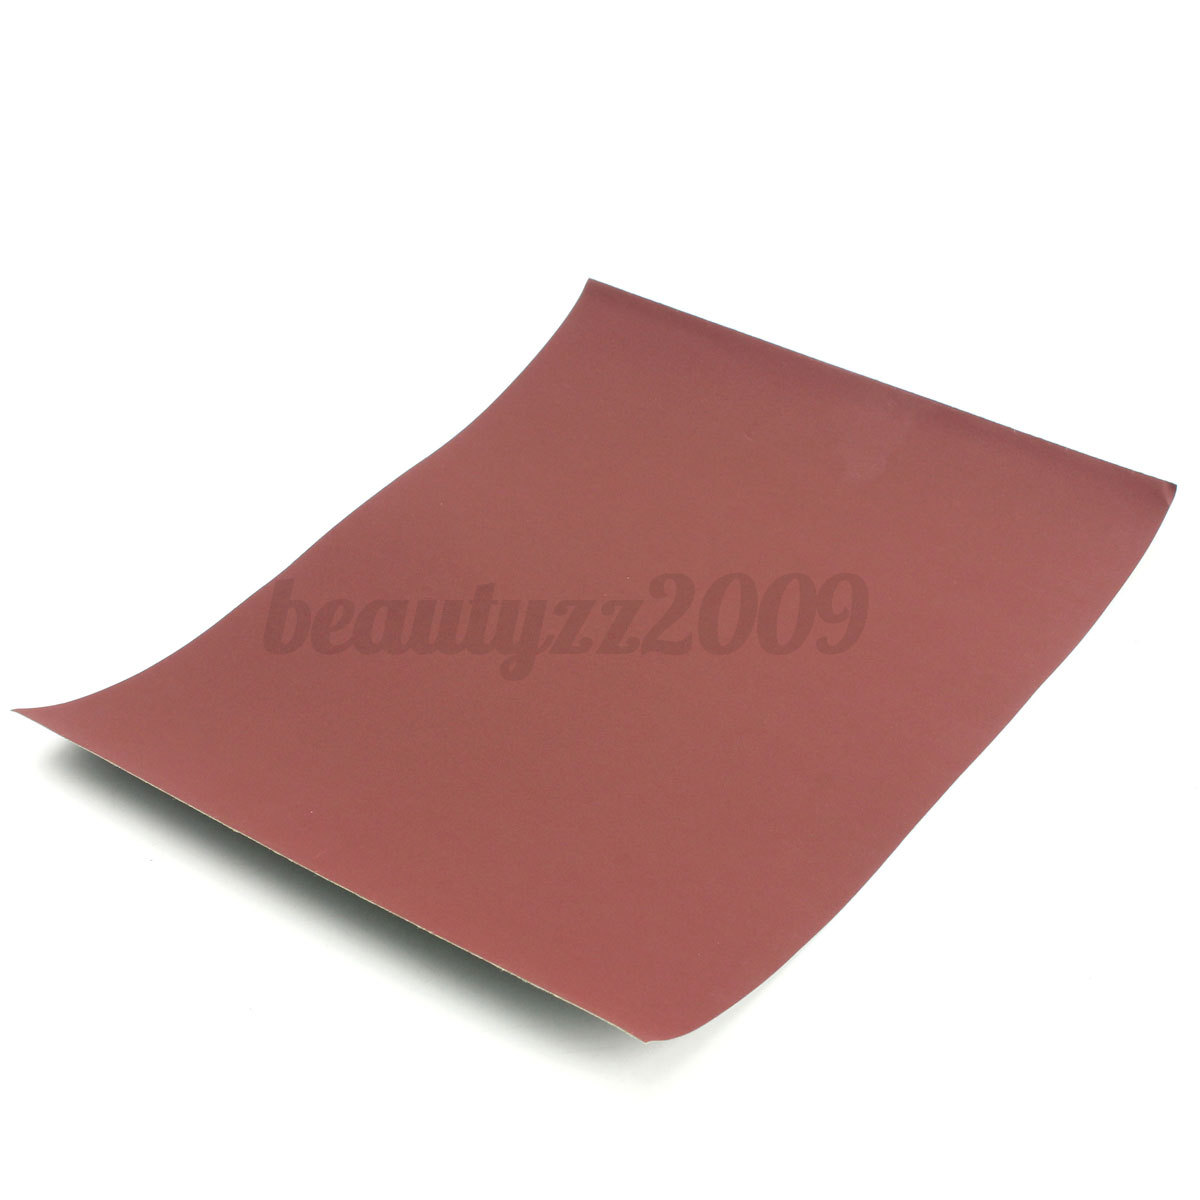 Waterproof abrasive sanding paper wet and dry sandpaper